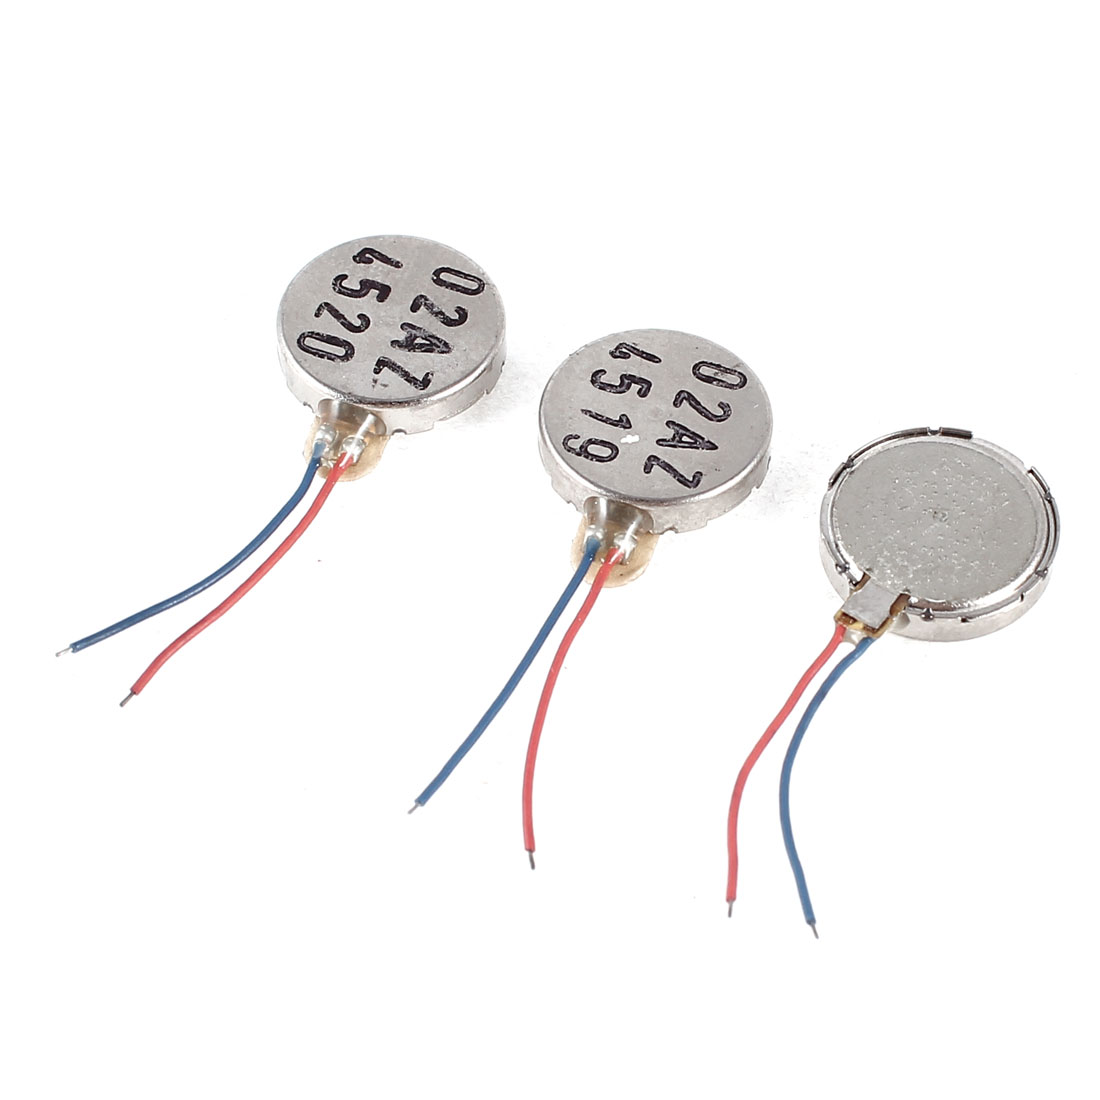 3-Pcs-DC-3V-12mm-x-3mm-Cell-Phone-Coin-Flat-Vibrating-Vibration-Mini-Motor